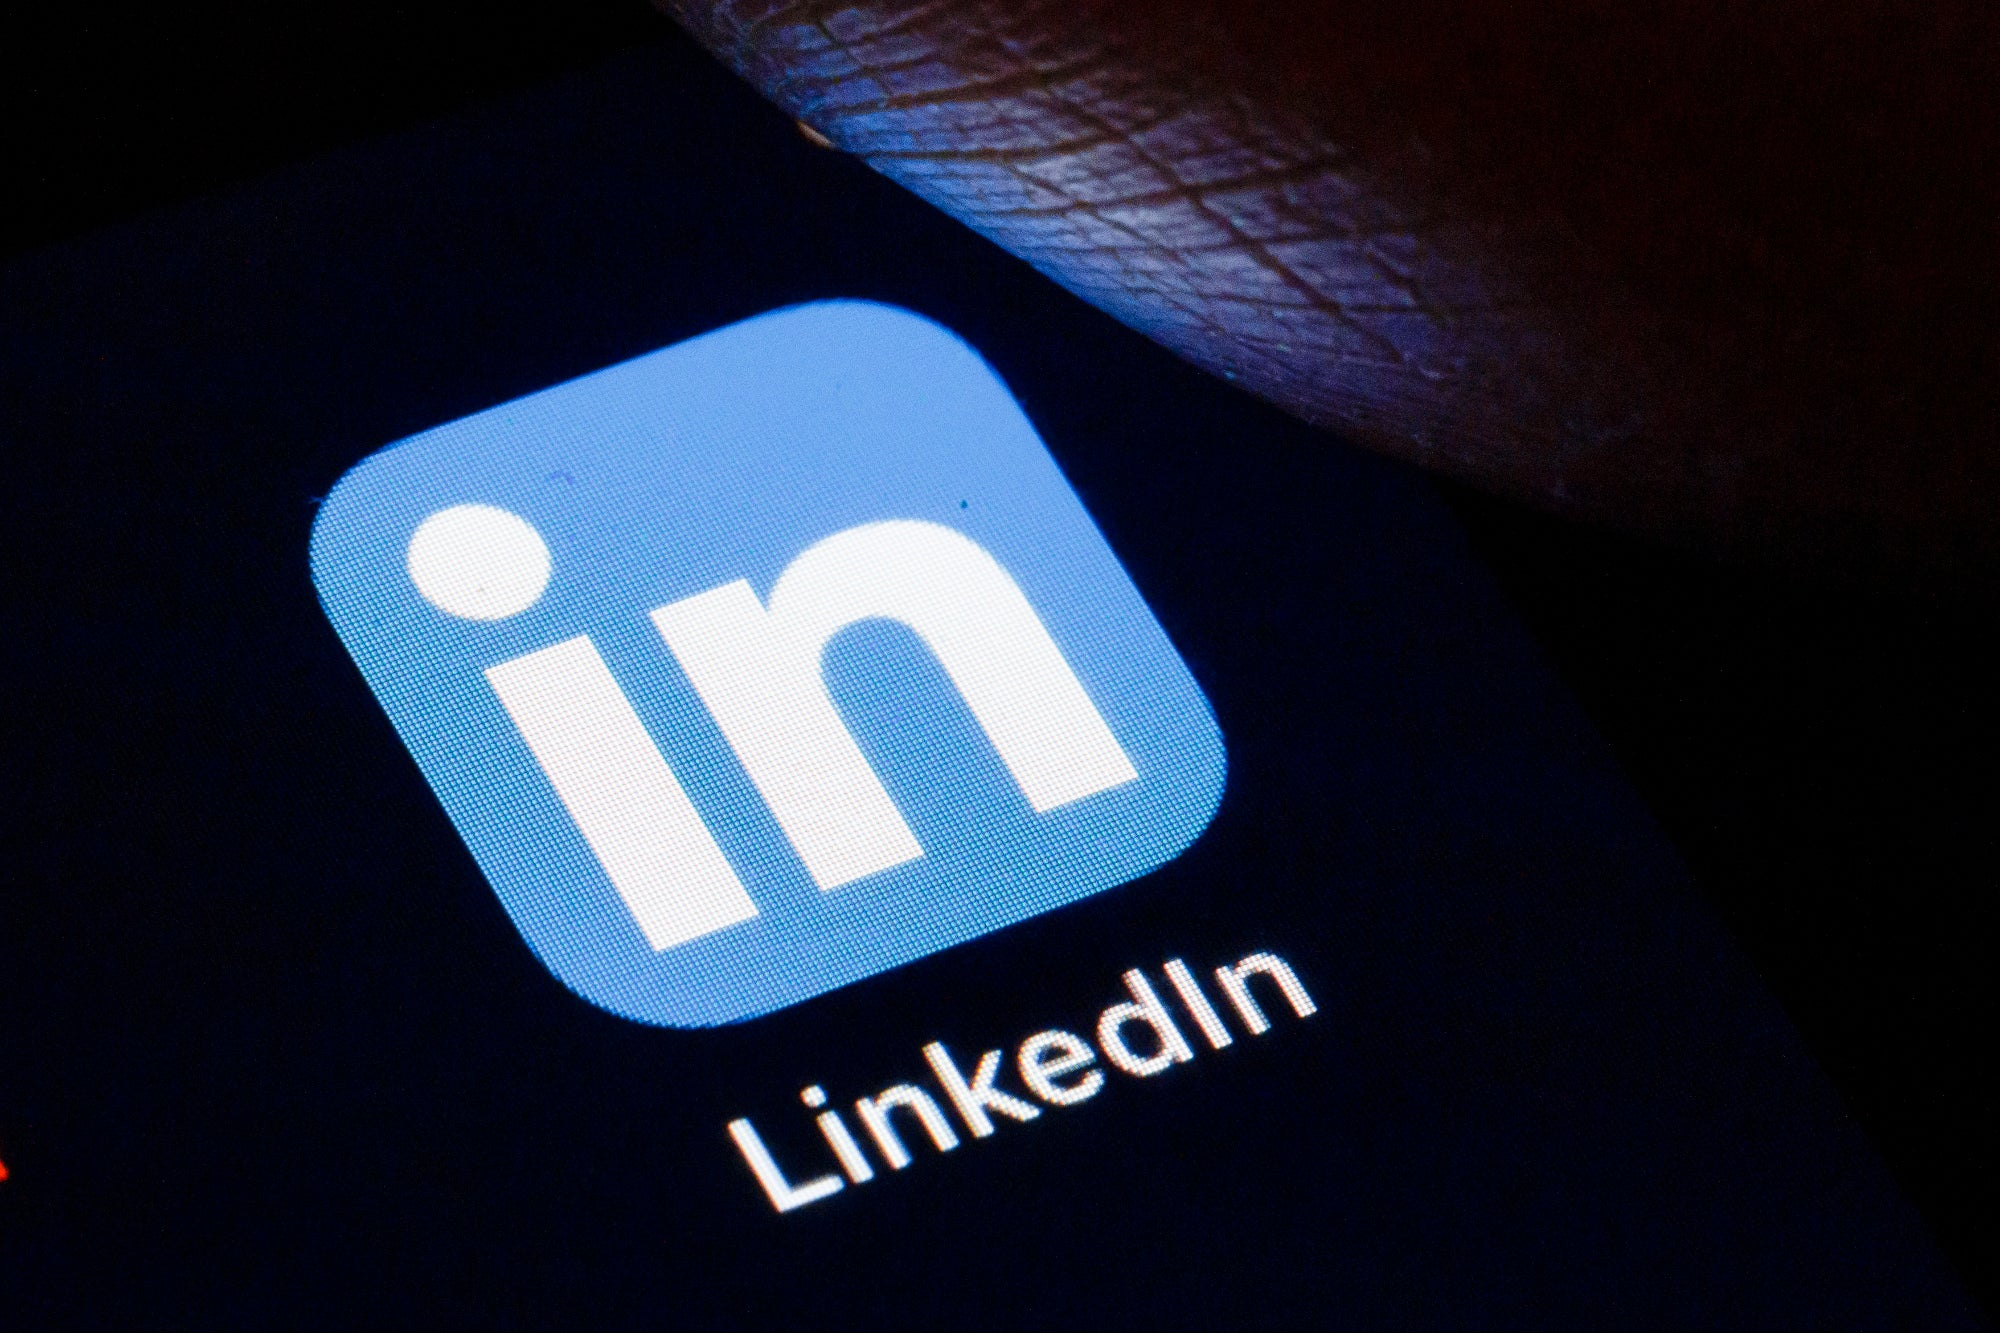 LinkedIn, The Microsoft Owned Platform Will Now Have Video-Conferencing Features: Skype Will Not Be Part Of The Development